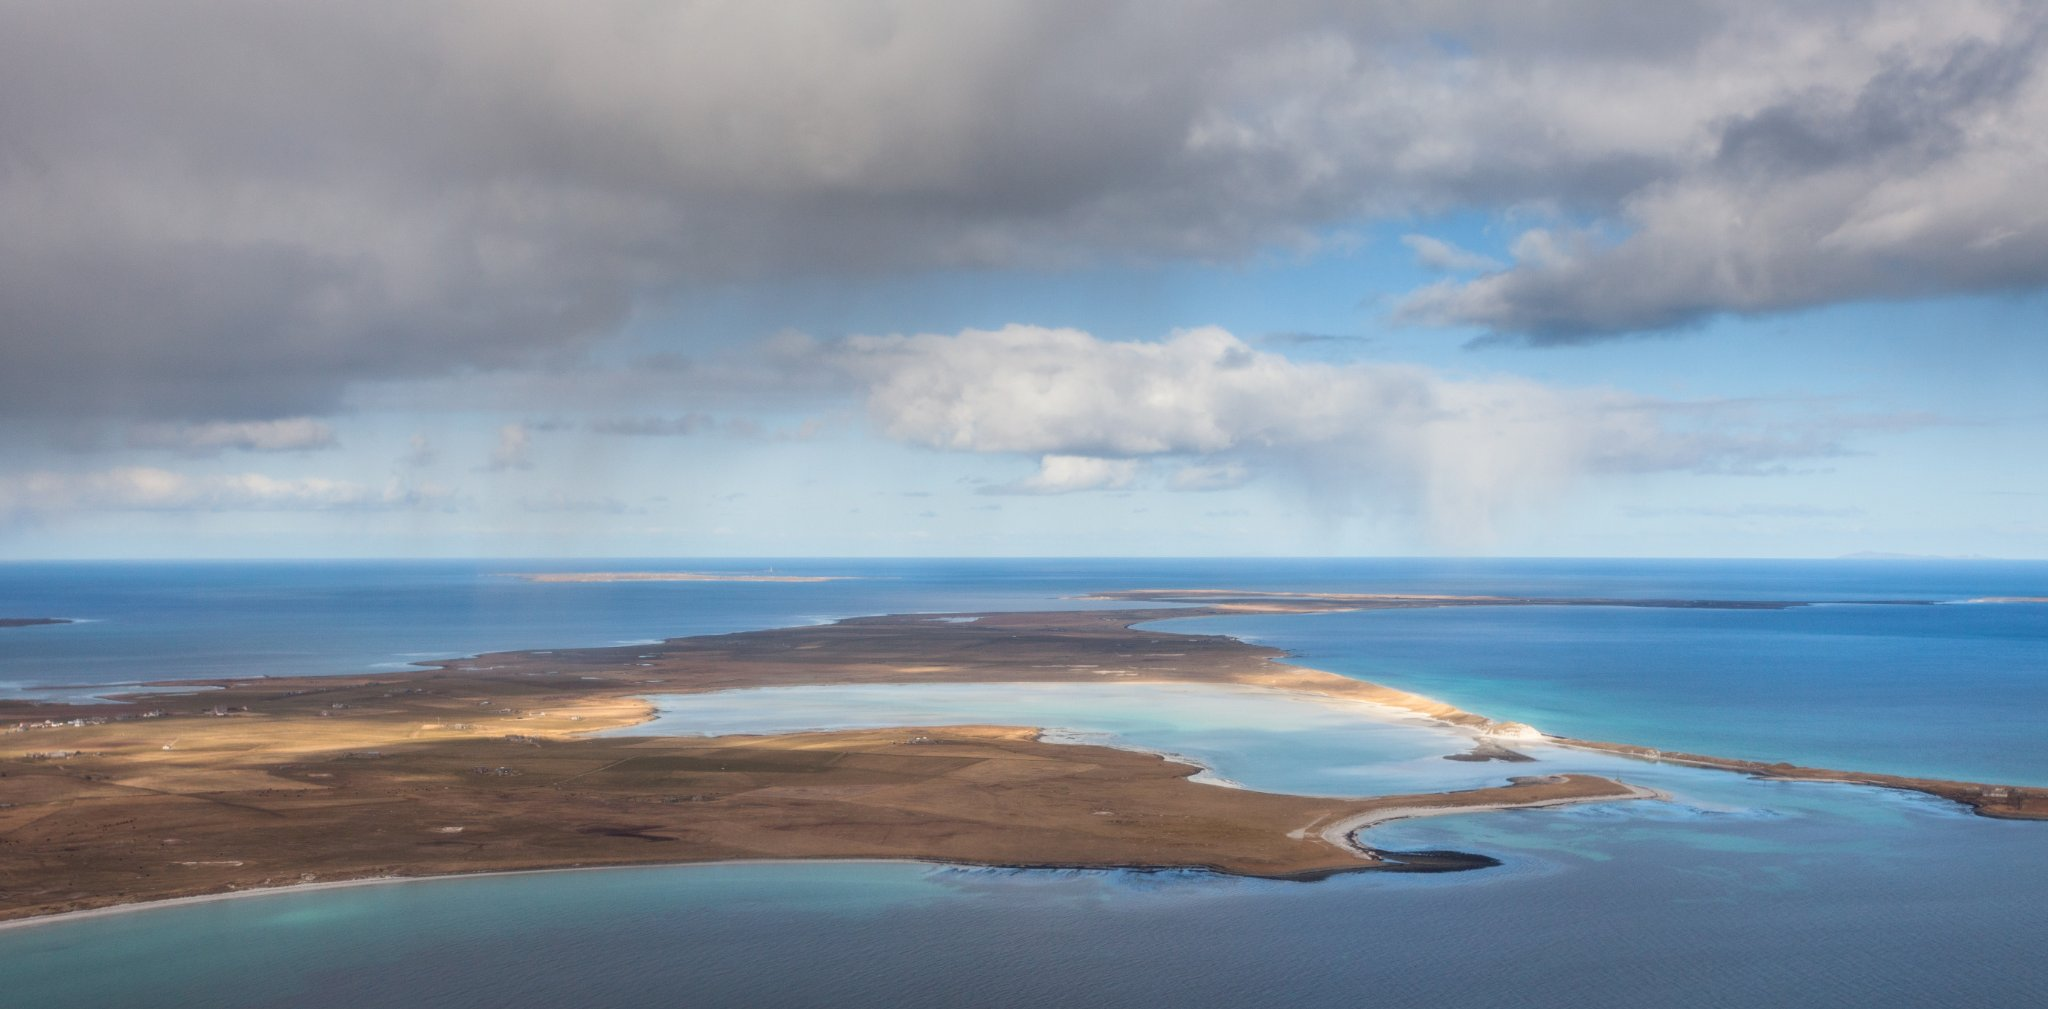 Looking north to North Ronaldsay over the island of Sanday, Orkney - image by Premysl Fojtu